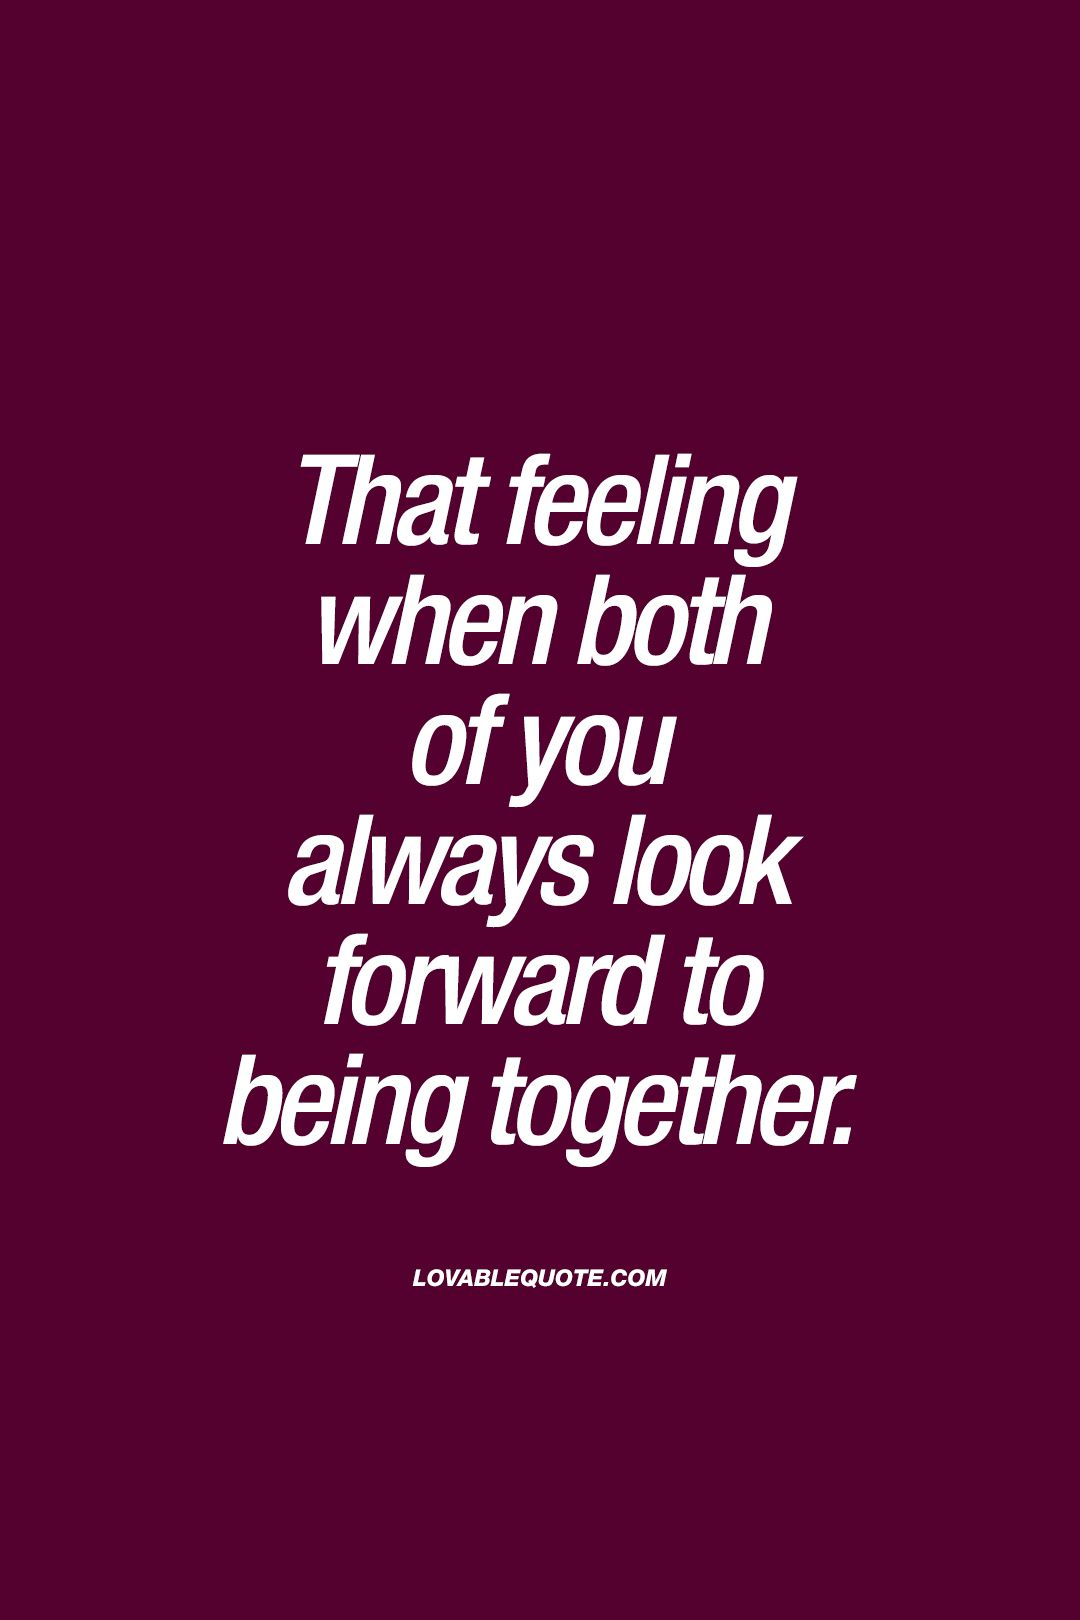 Being Together Quotes That Feeling When Both Of You Always Look Forward To Being